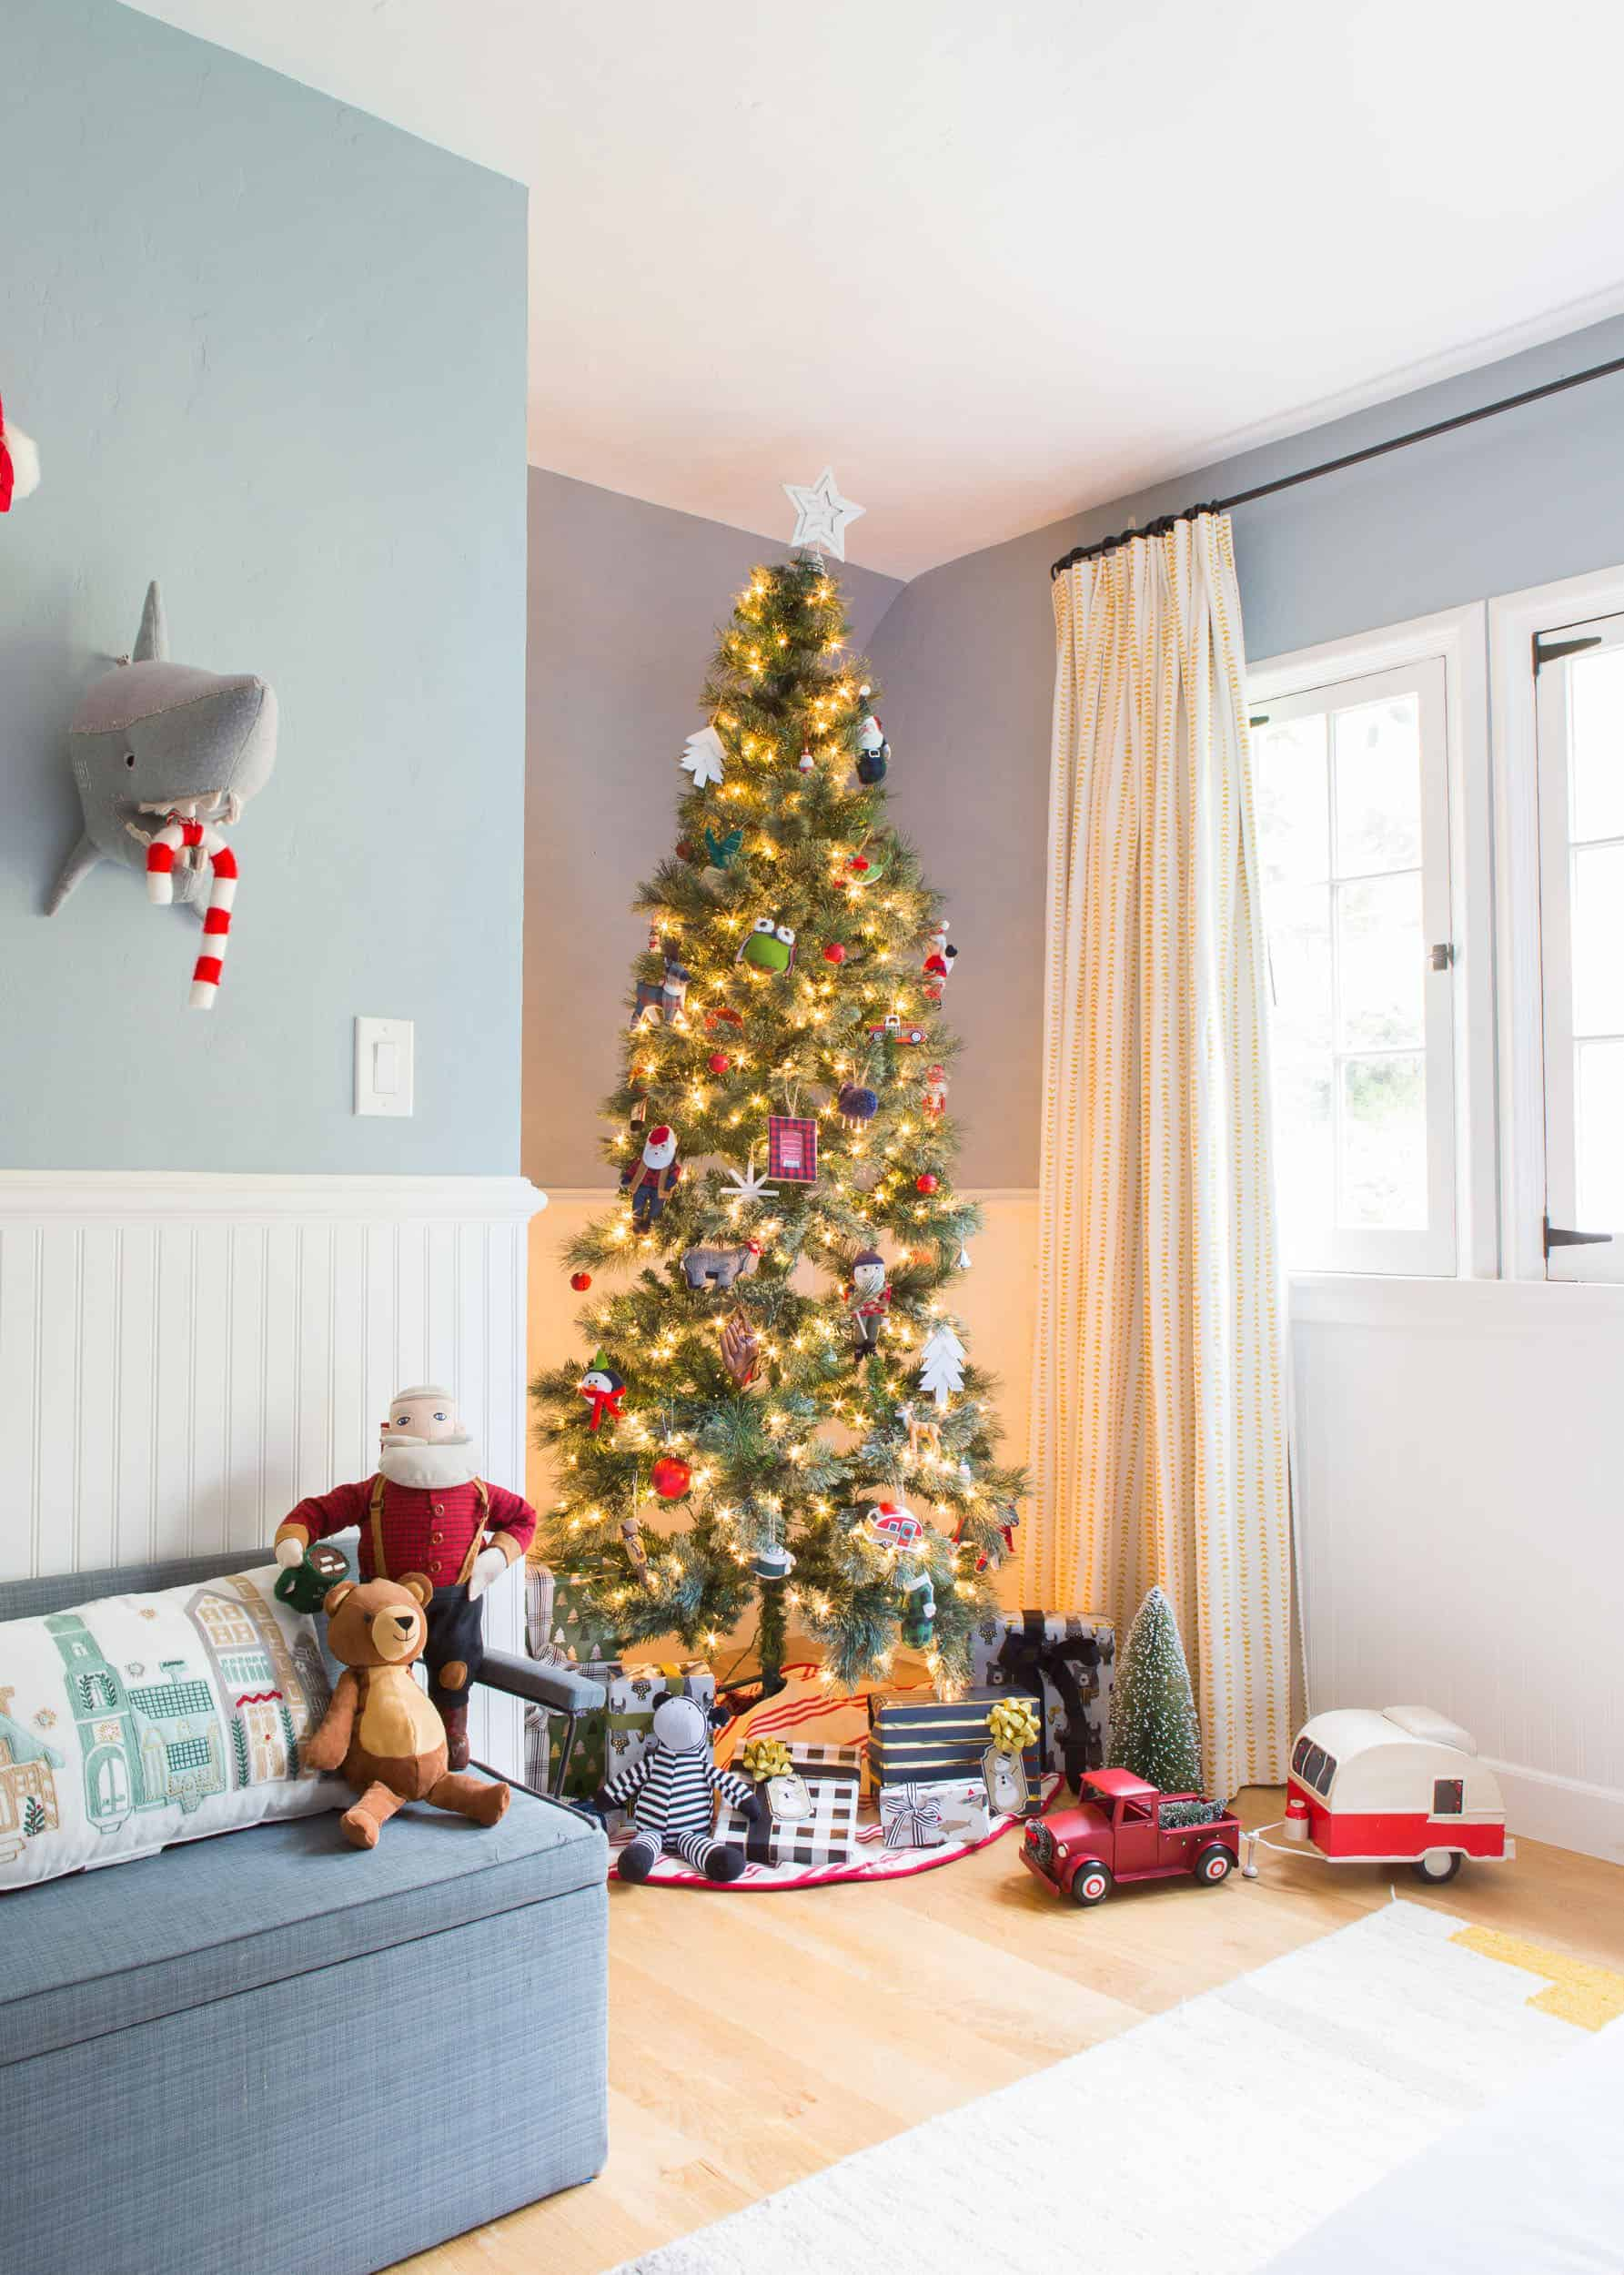 Charlie's Room, Decked For The Holidays